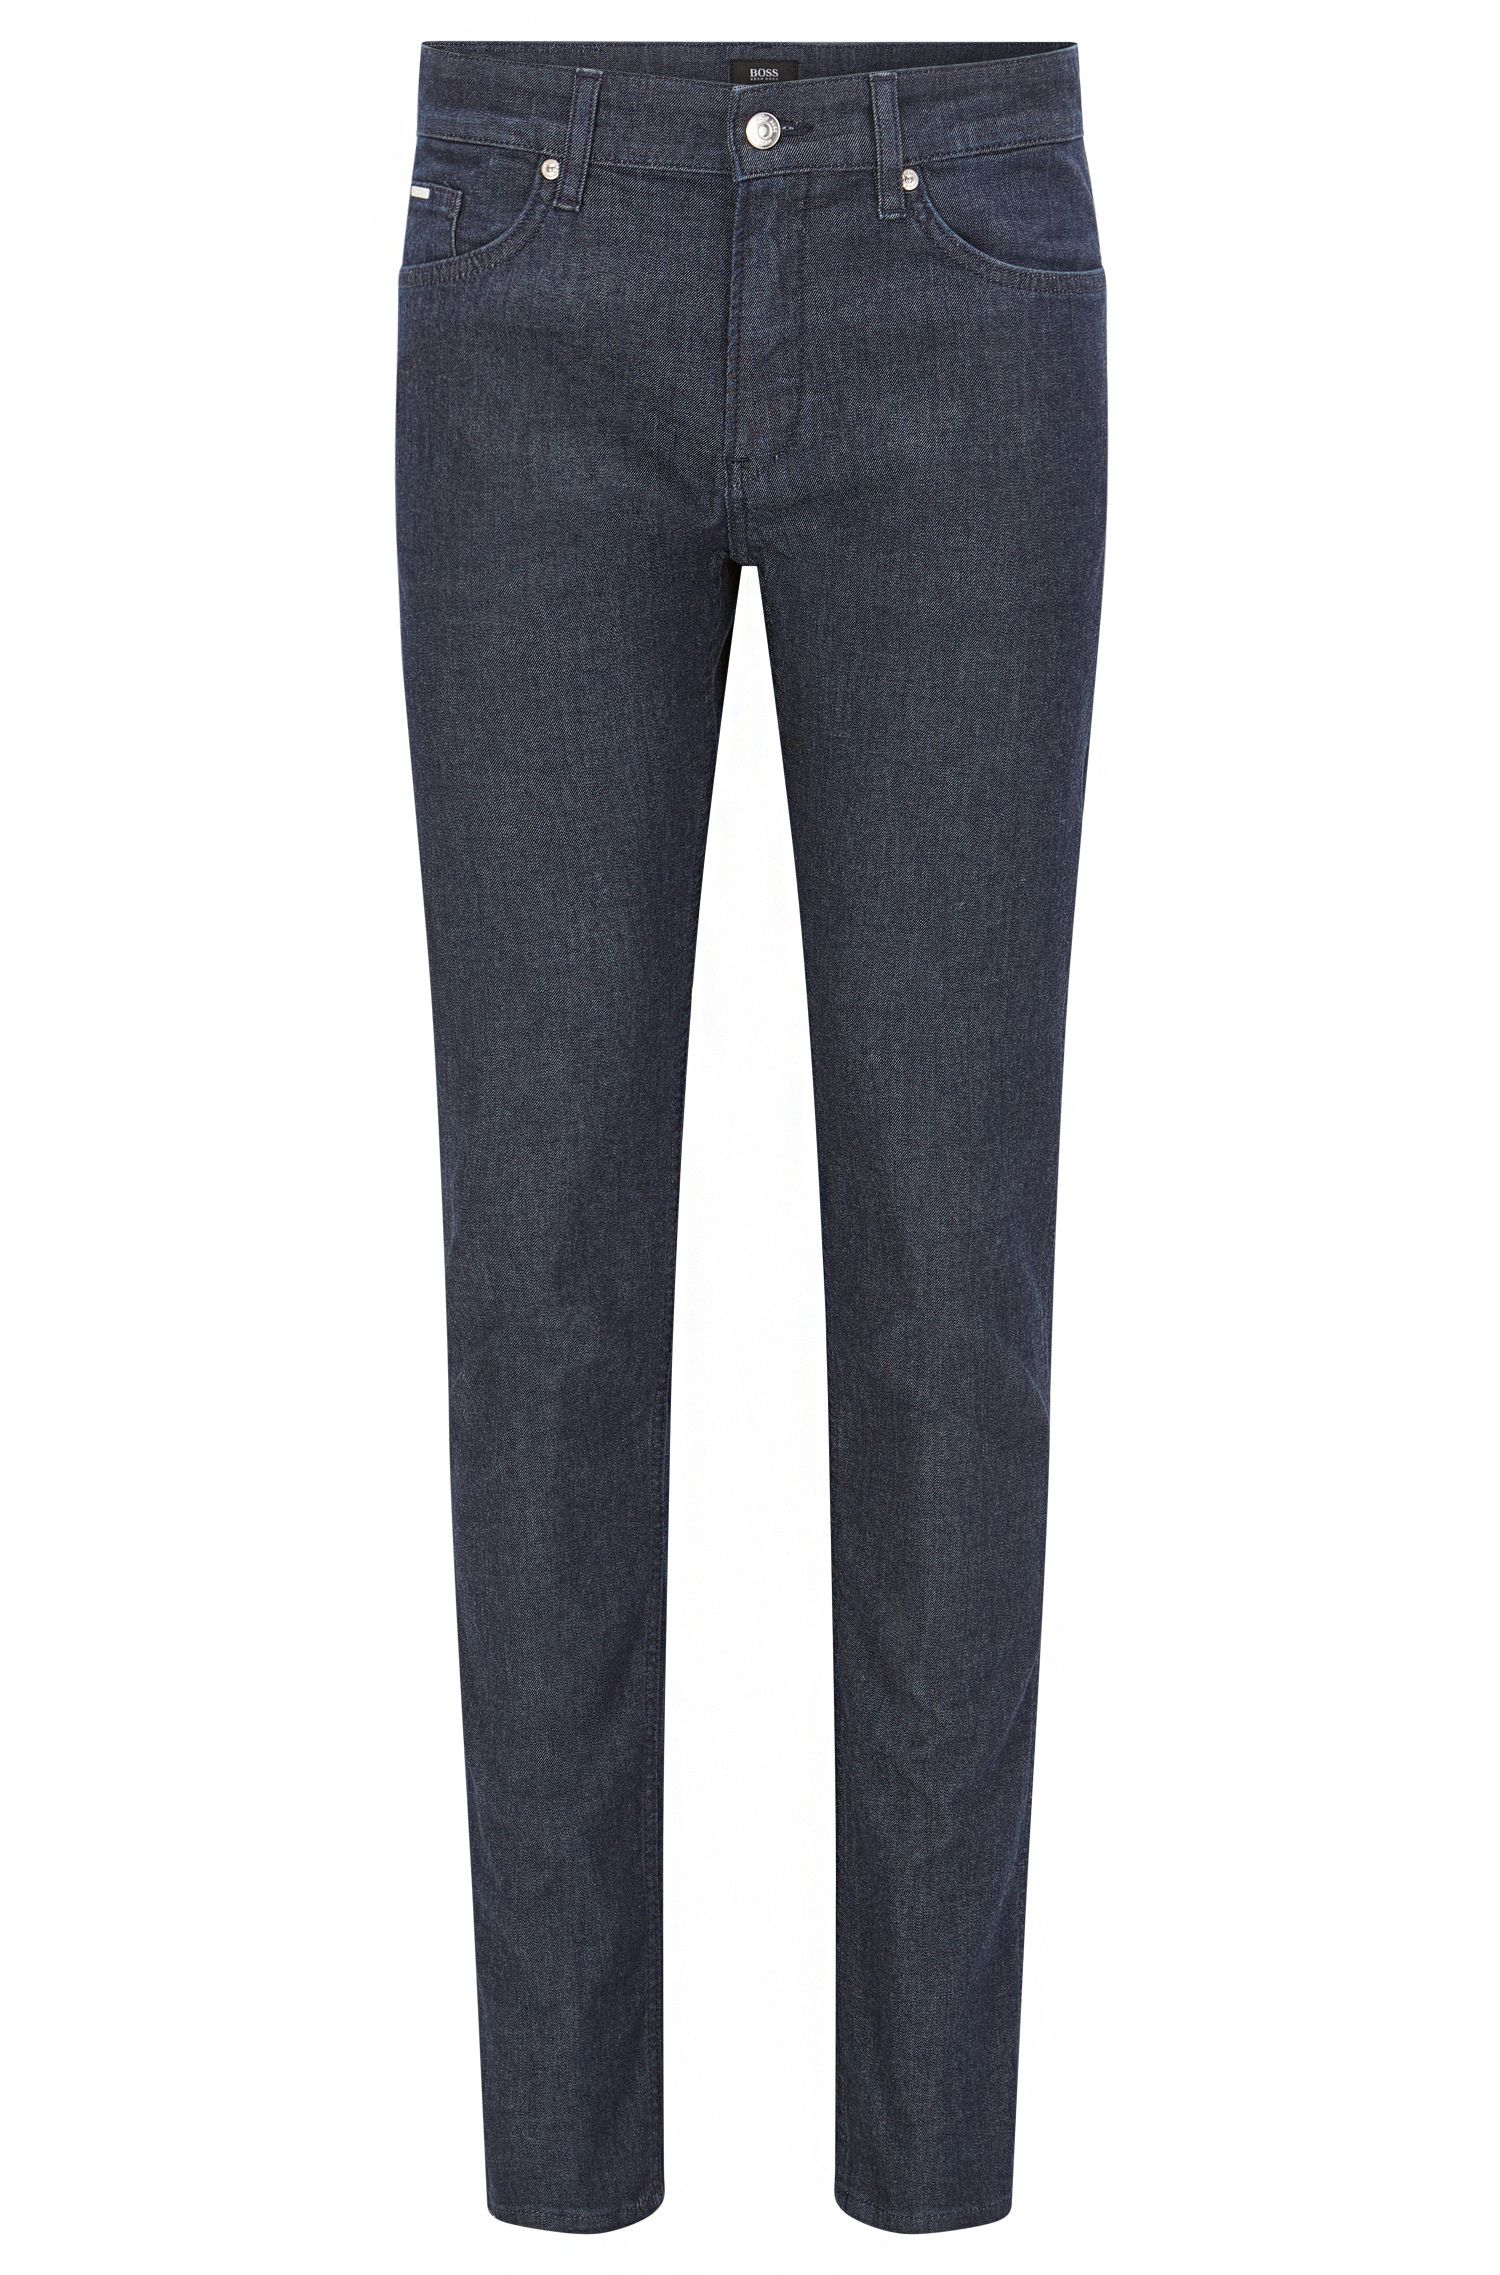 Slim-fit dark blue jeans in stretch denim